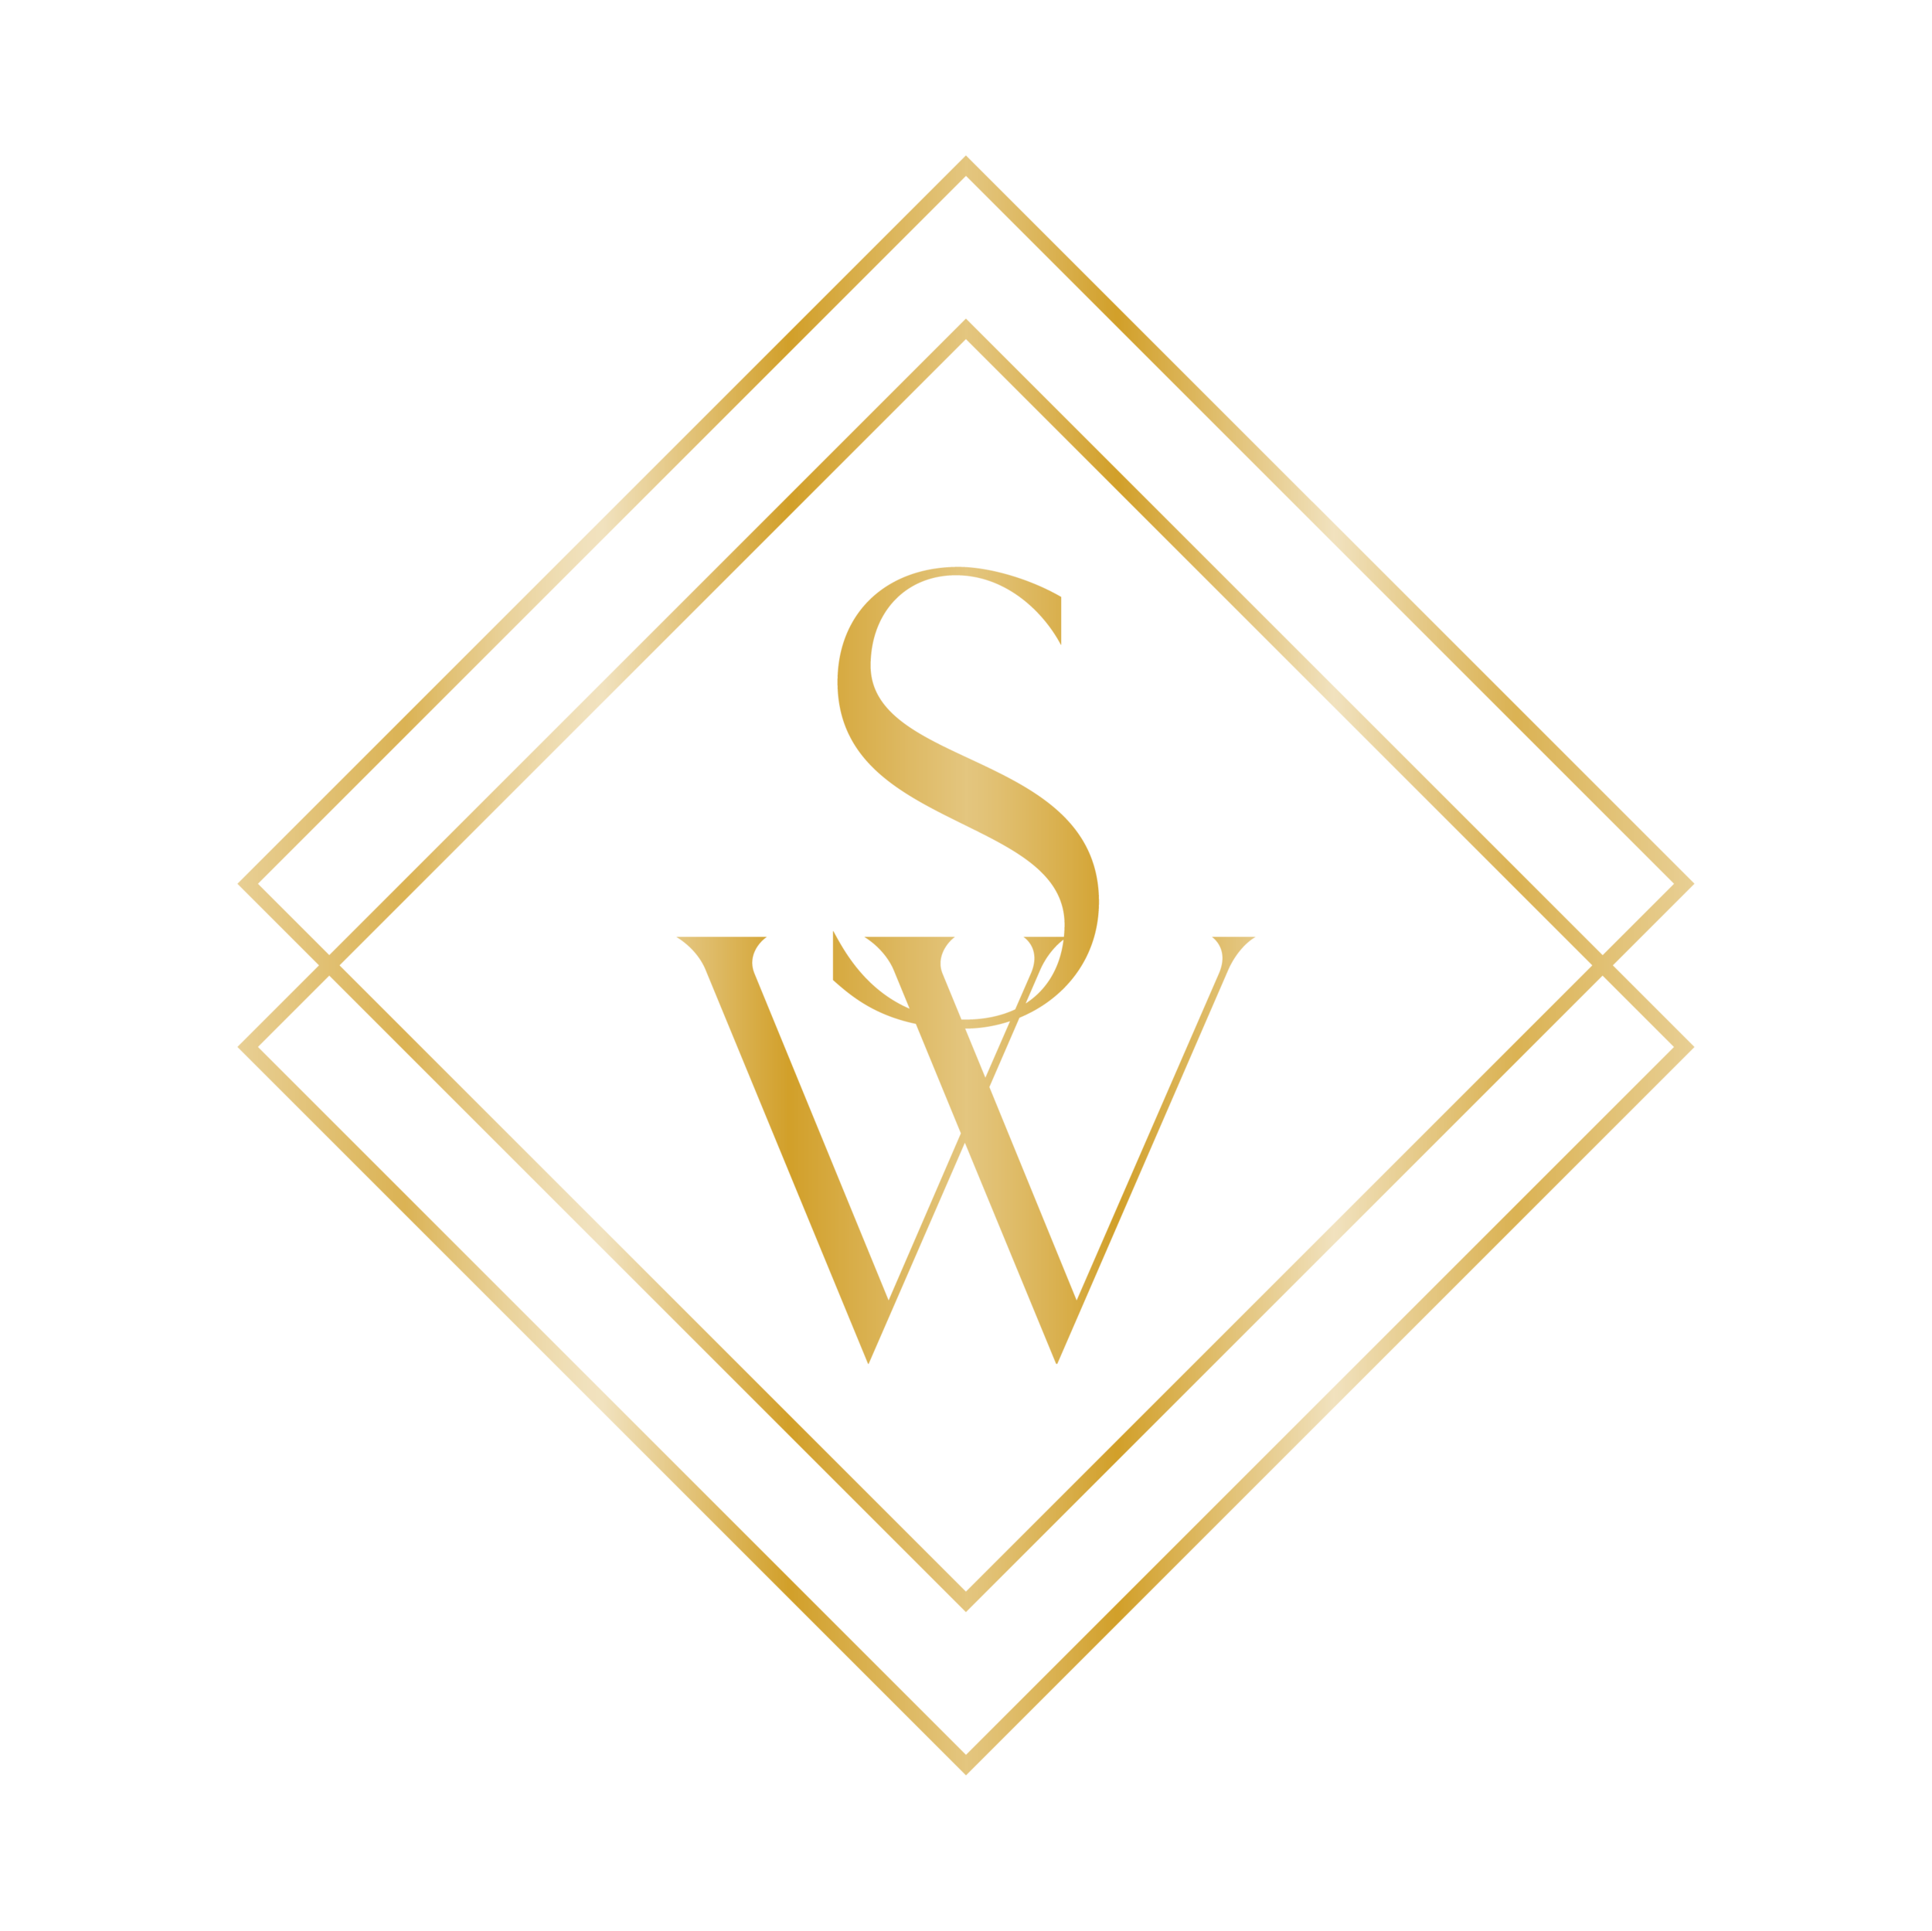 PNG_SOAW-Icon-GoldFoil.png